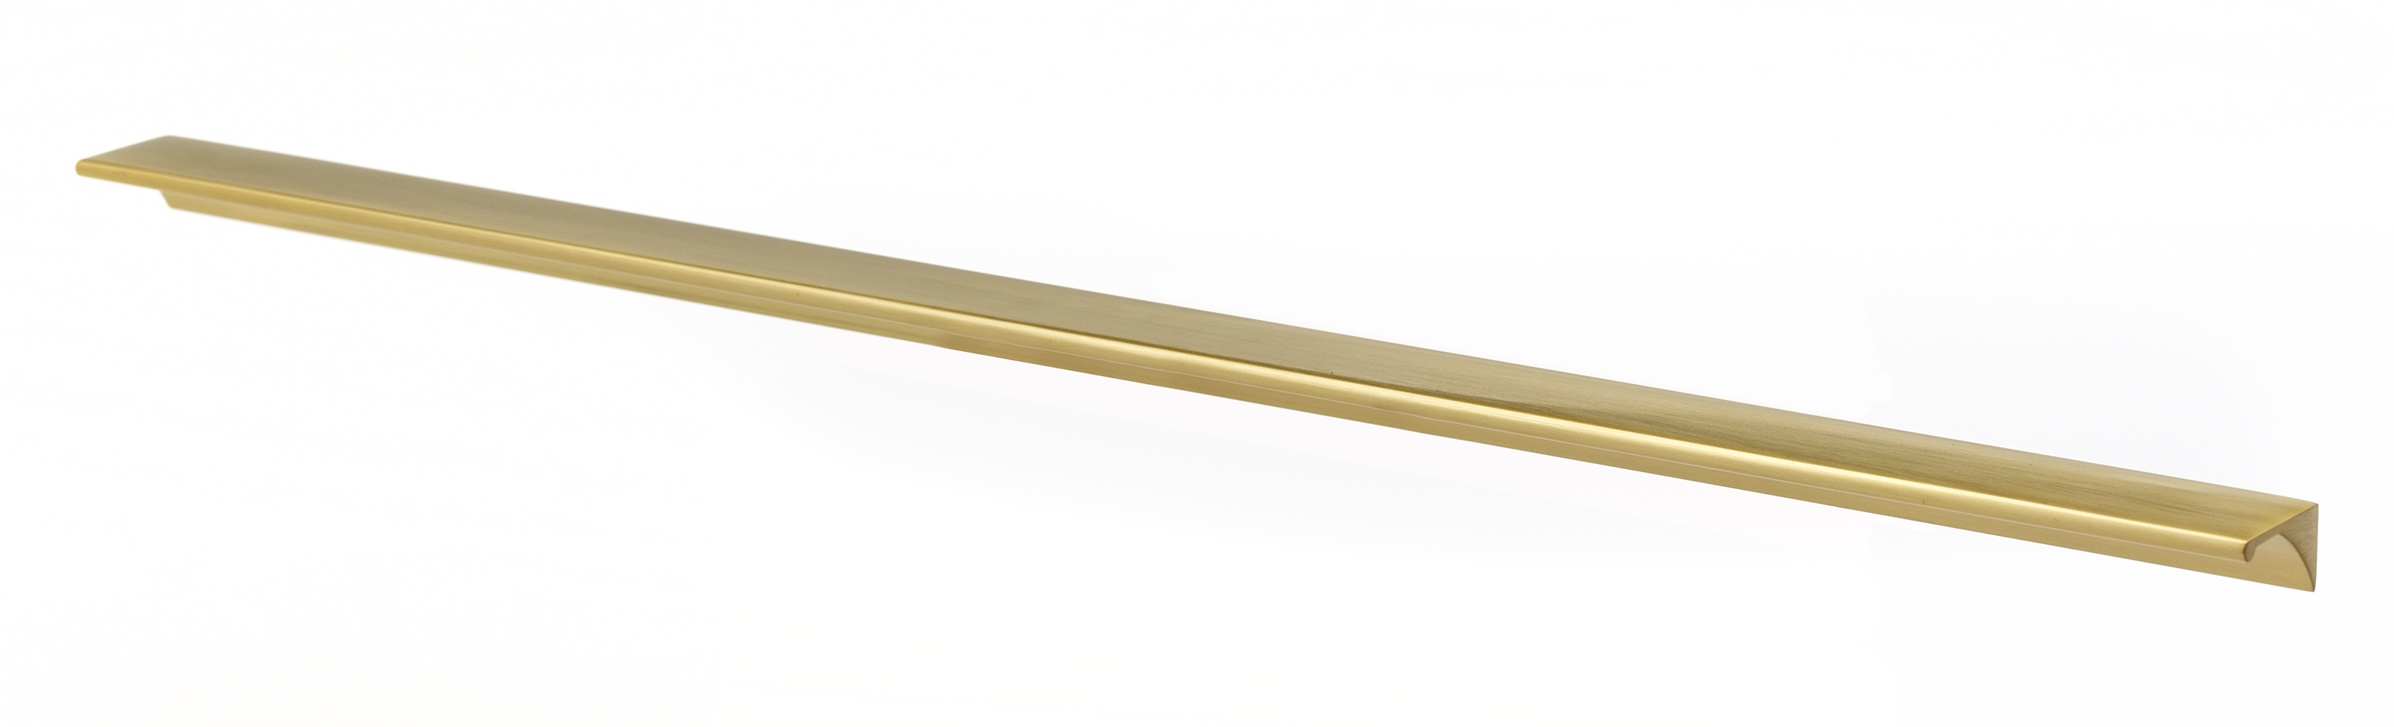 Satin Brass Cabinet Pulls Tab Appliance Pulls D970 12 Creations By Alno Inc